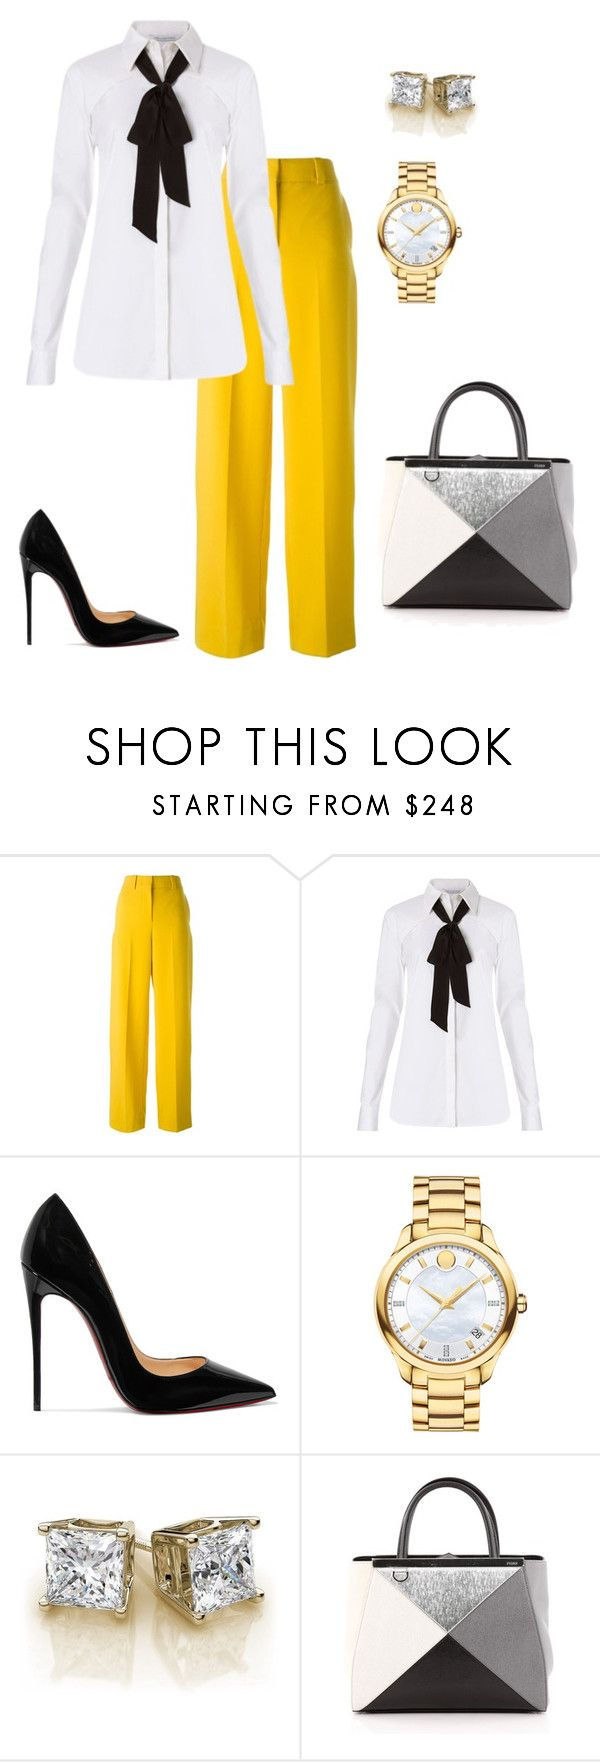 """""""Untitled #54"""" by s-tate-1 ❤ liked on Polyvore featuring Cédric Charlier, Diane Von Furstenberg, Christian Louboutin, Movado and Fendi"""